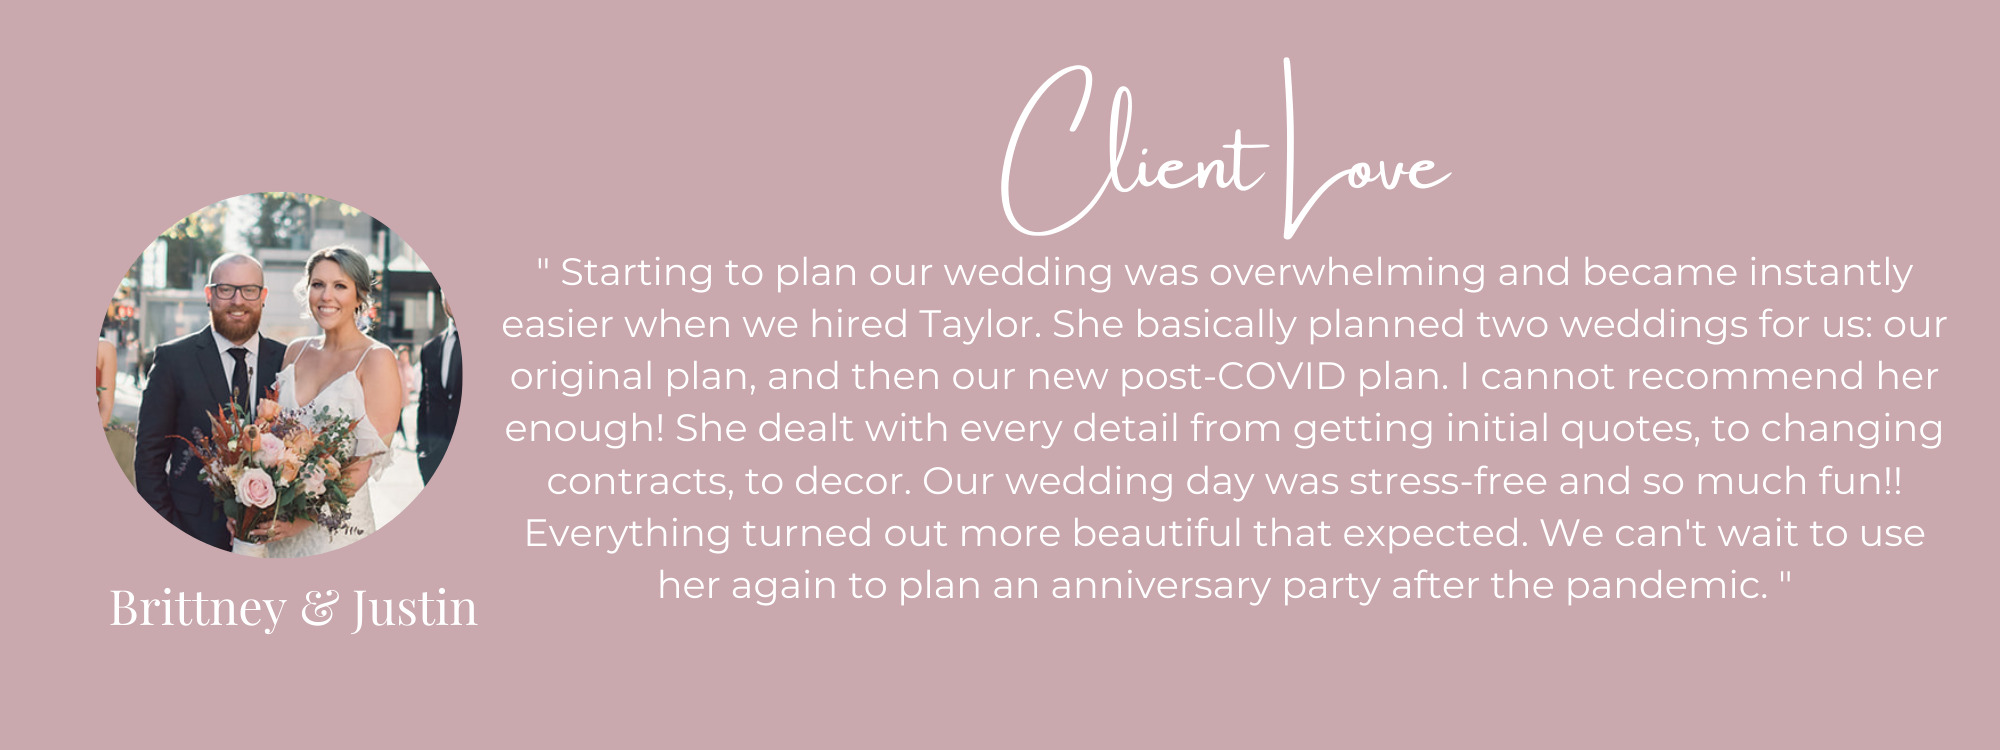 wedding planner review from bride